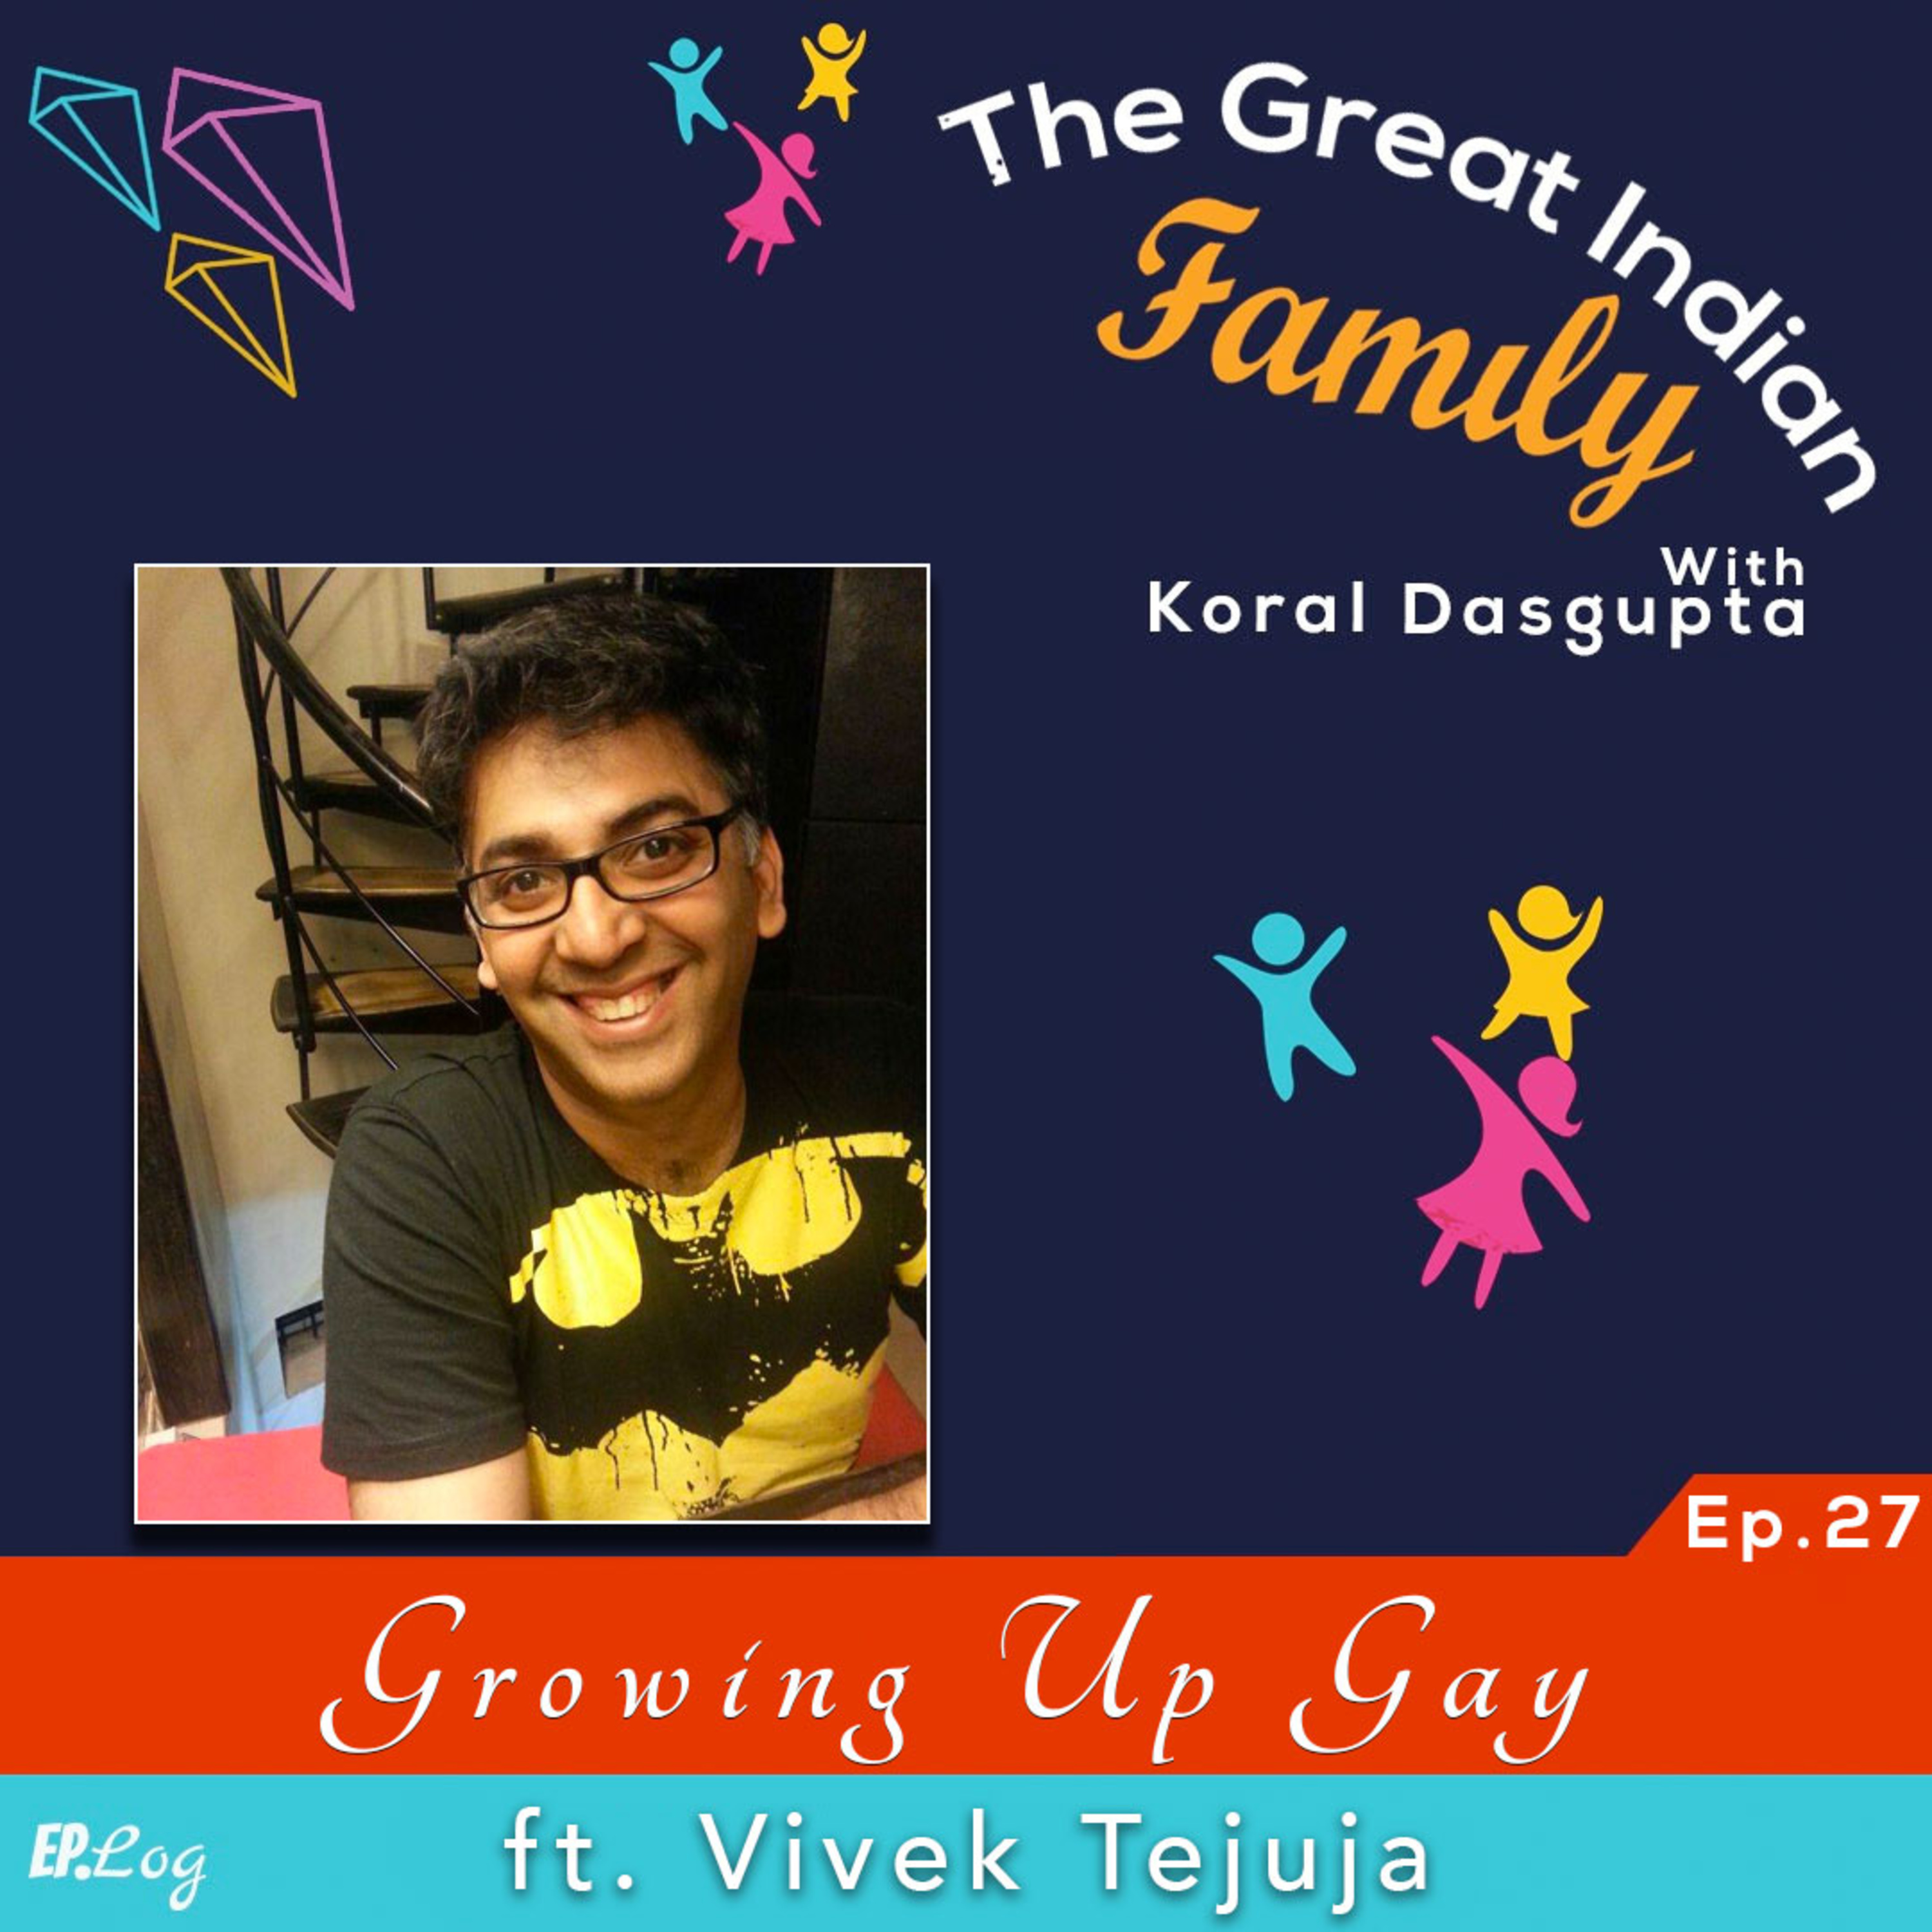 Ep.27 Growing Up Gay ft. Vivek Tejuja, Culture Editor- Verve